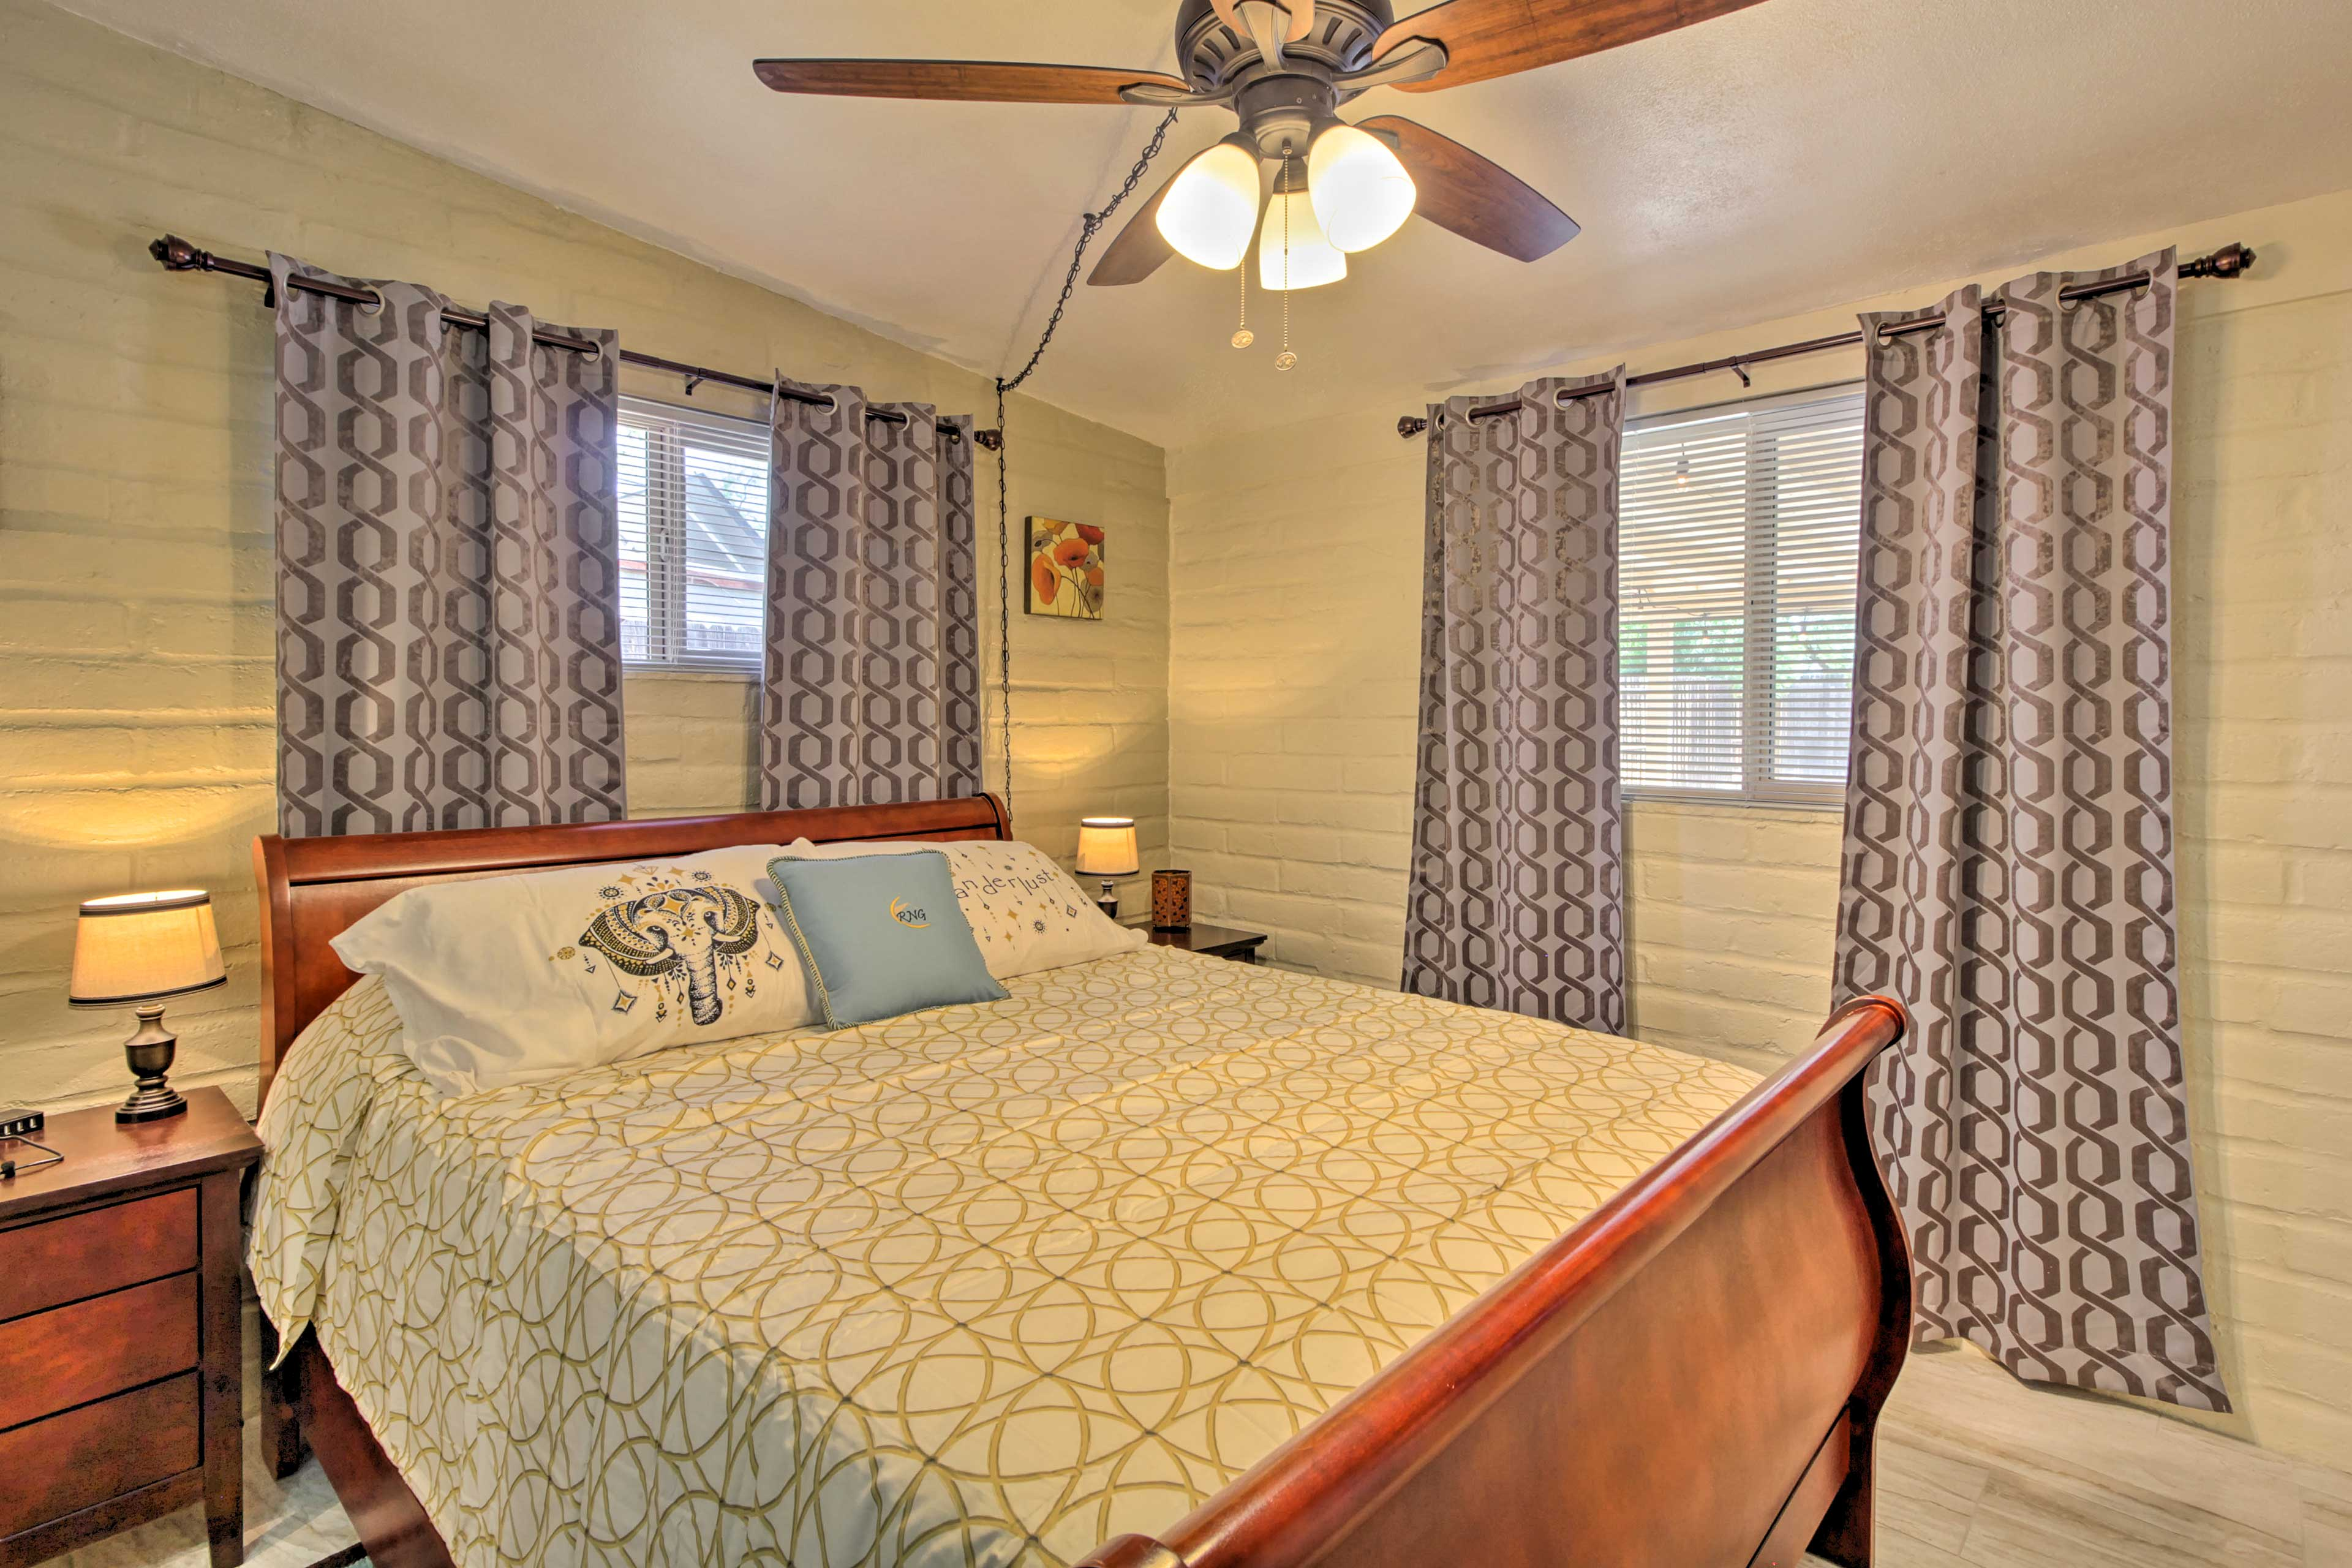 A deep night's sleep awaits you in this cozy queen bed.